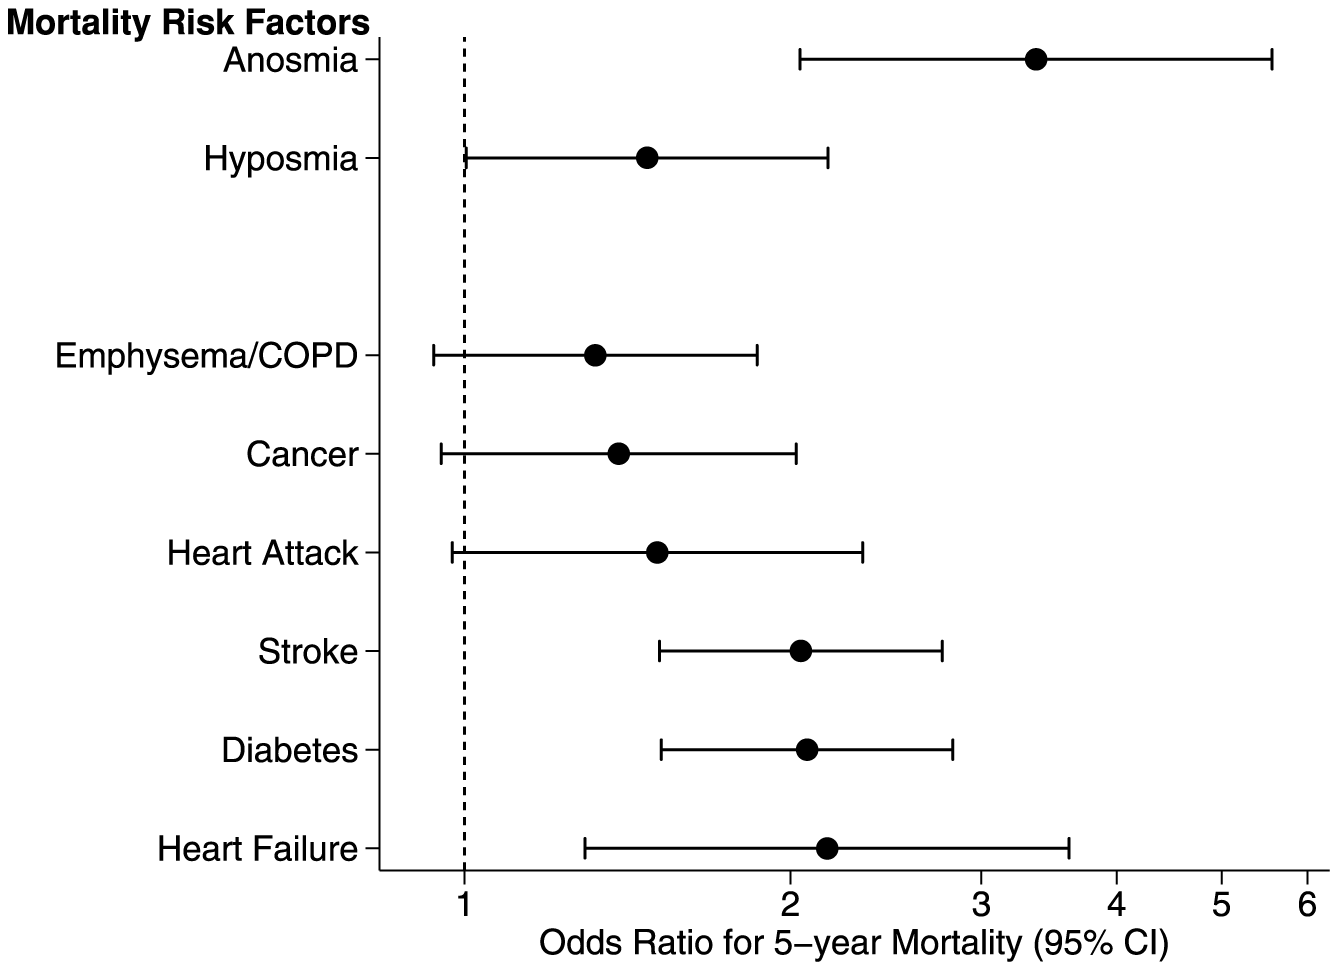 Figure 2 aus Citation: Pinto JM, Wroblewski KE, Kern DW, Schumm LP, McClintock MK (2014) Olfactory Dysfunction Predicts 5-Year Mortality in Older Adults. PLoS ONE 9(10): e107541. doi:10.1371/journal.pone.0107541